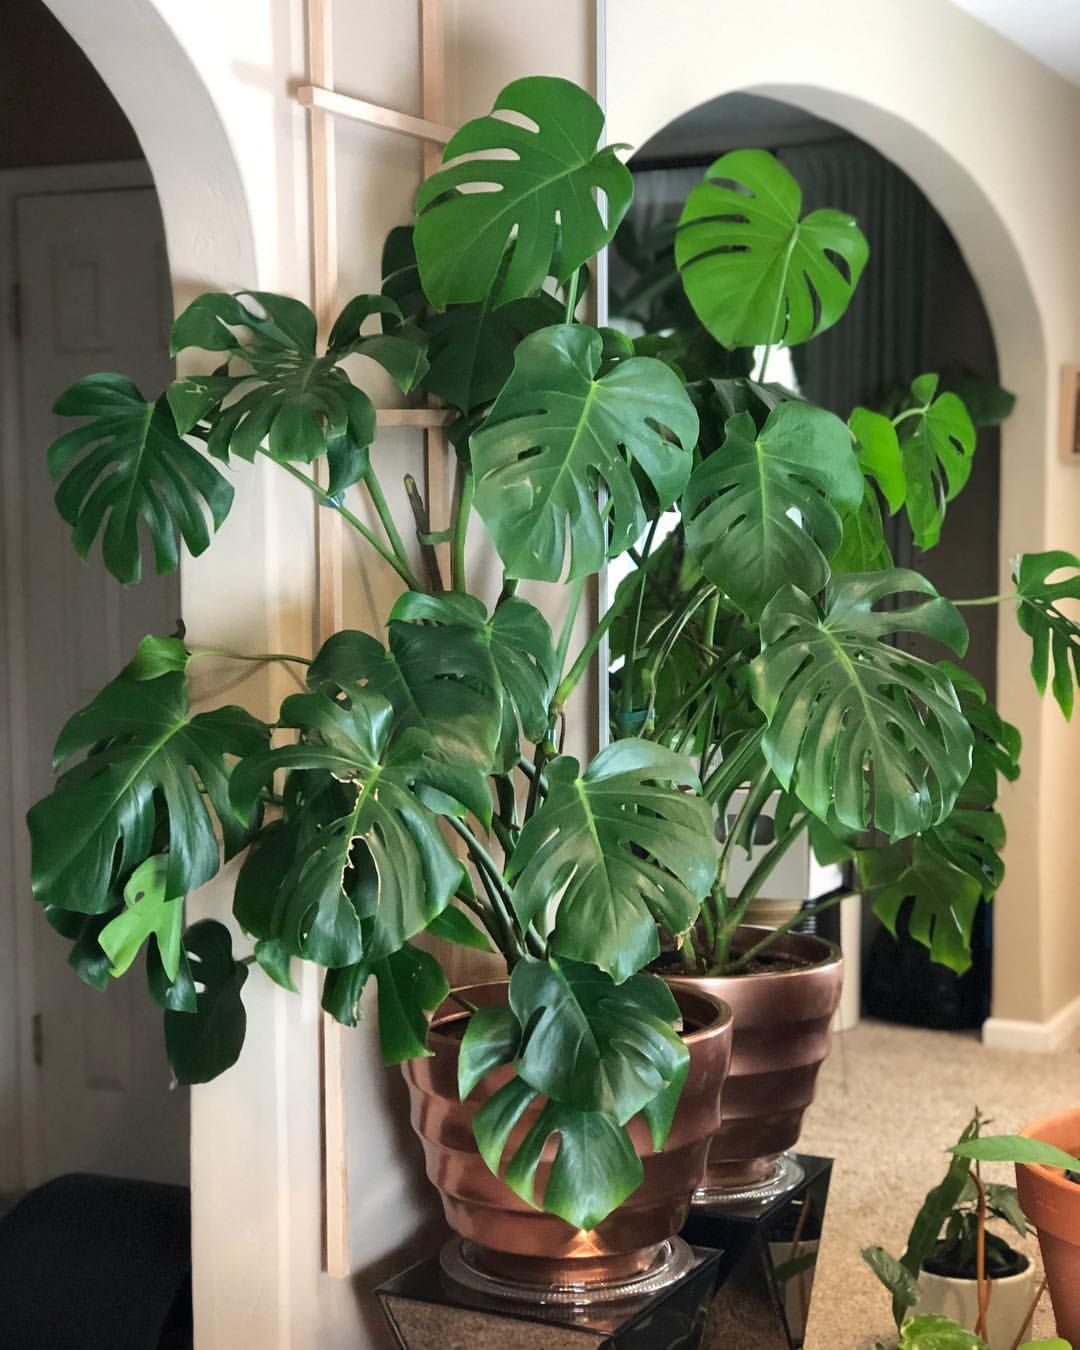 With The Help Of Our Grow Light Easybrightnet The Leaves On Our Monstera Have Settled And Face Towards Us We R Grow Lights House Plants Indoor Plant Leaves